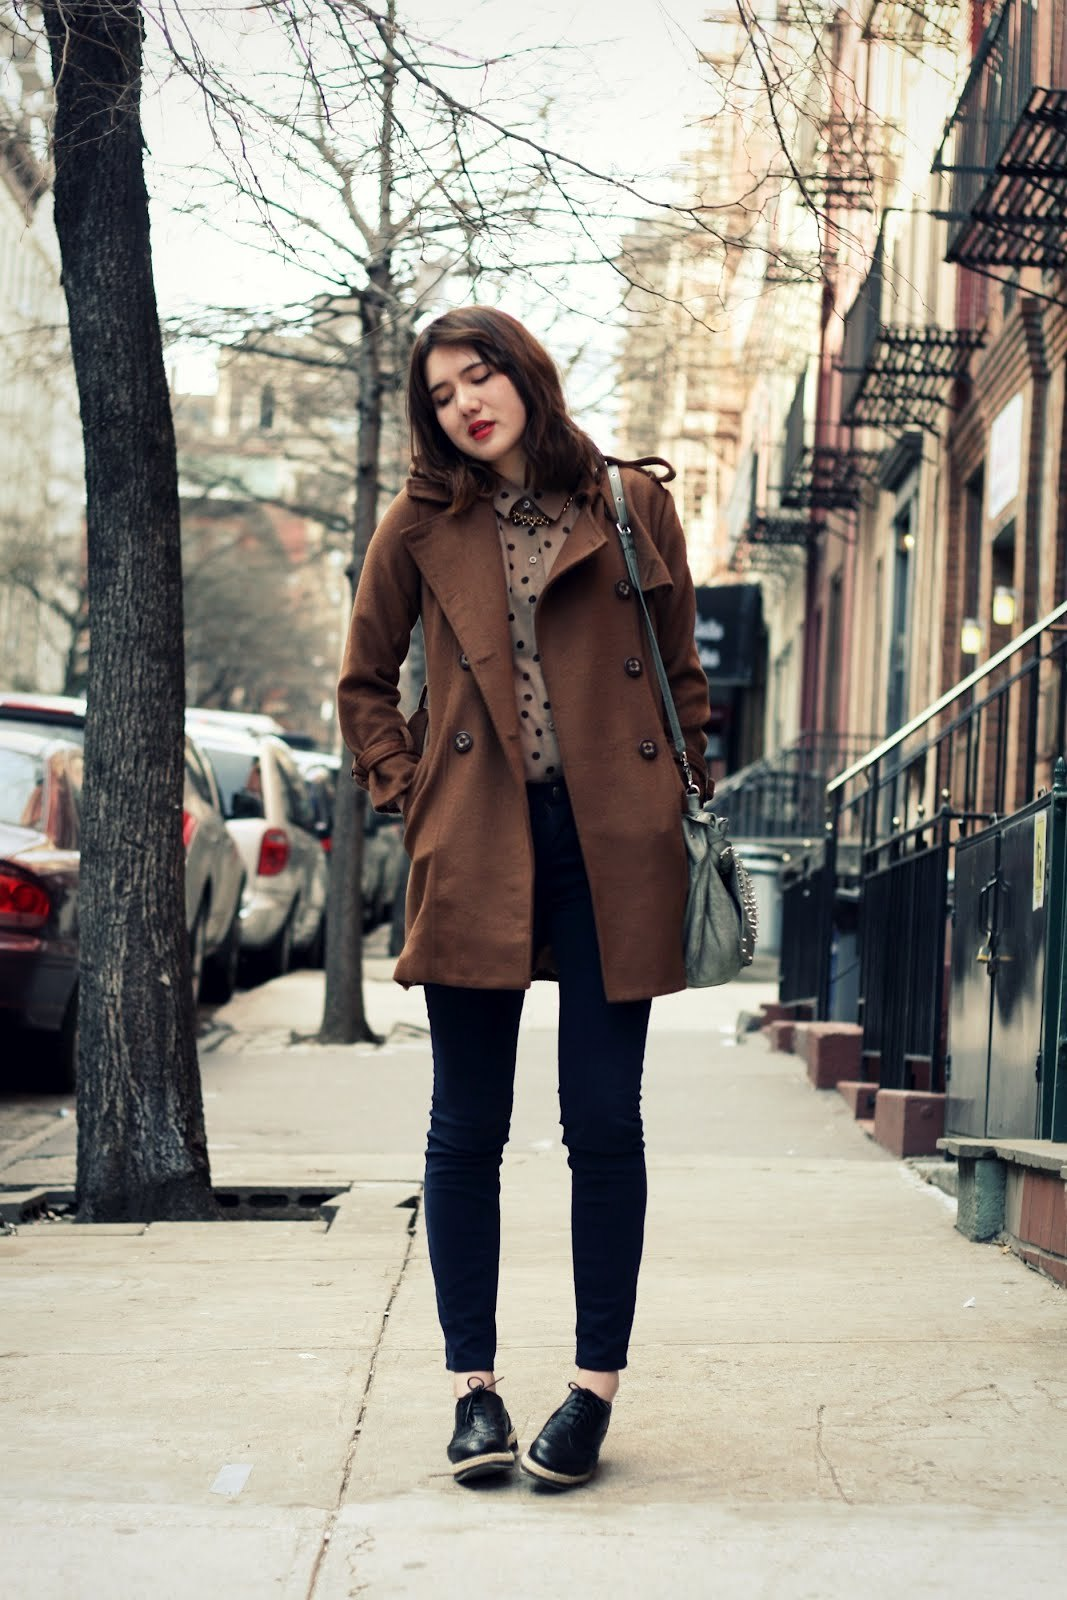 Blouse - CALICO, Coat - borrowed, Necklace - Bottica, Jeans - Urban Outfitters, Shoes -Wanted, Bracelet - vintage